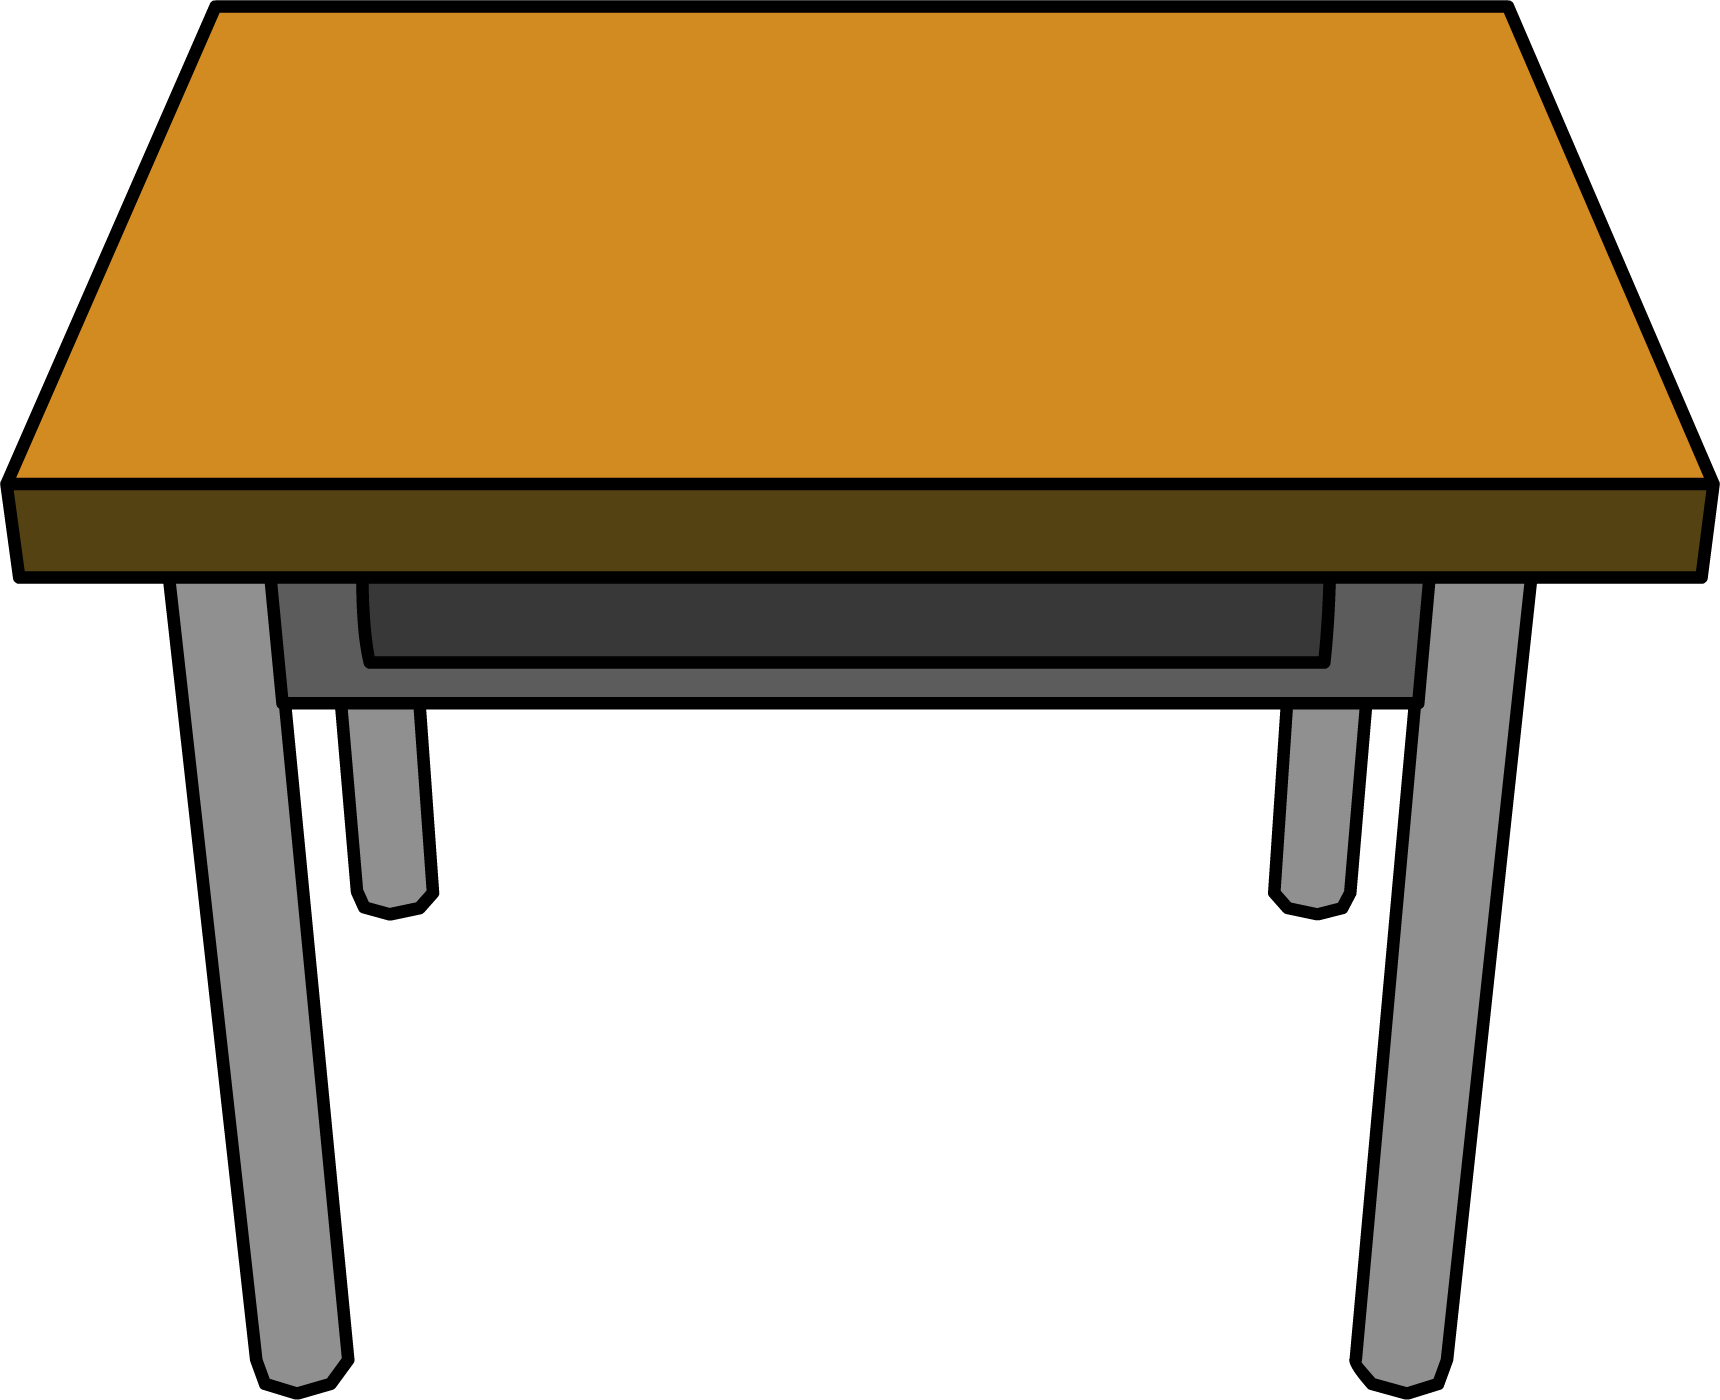 School tables clipart image free download Desk Drawing transparent PNG - StickPNG image free download